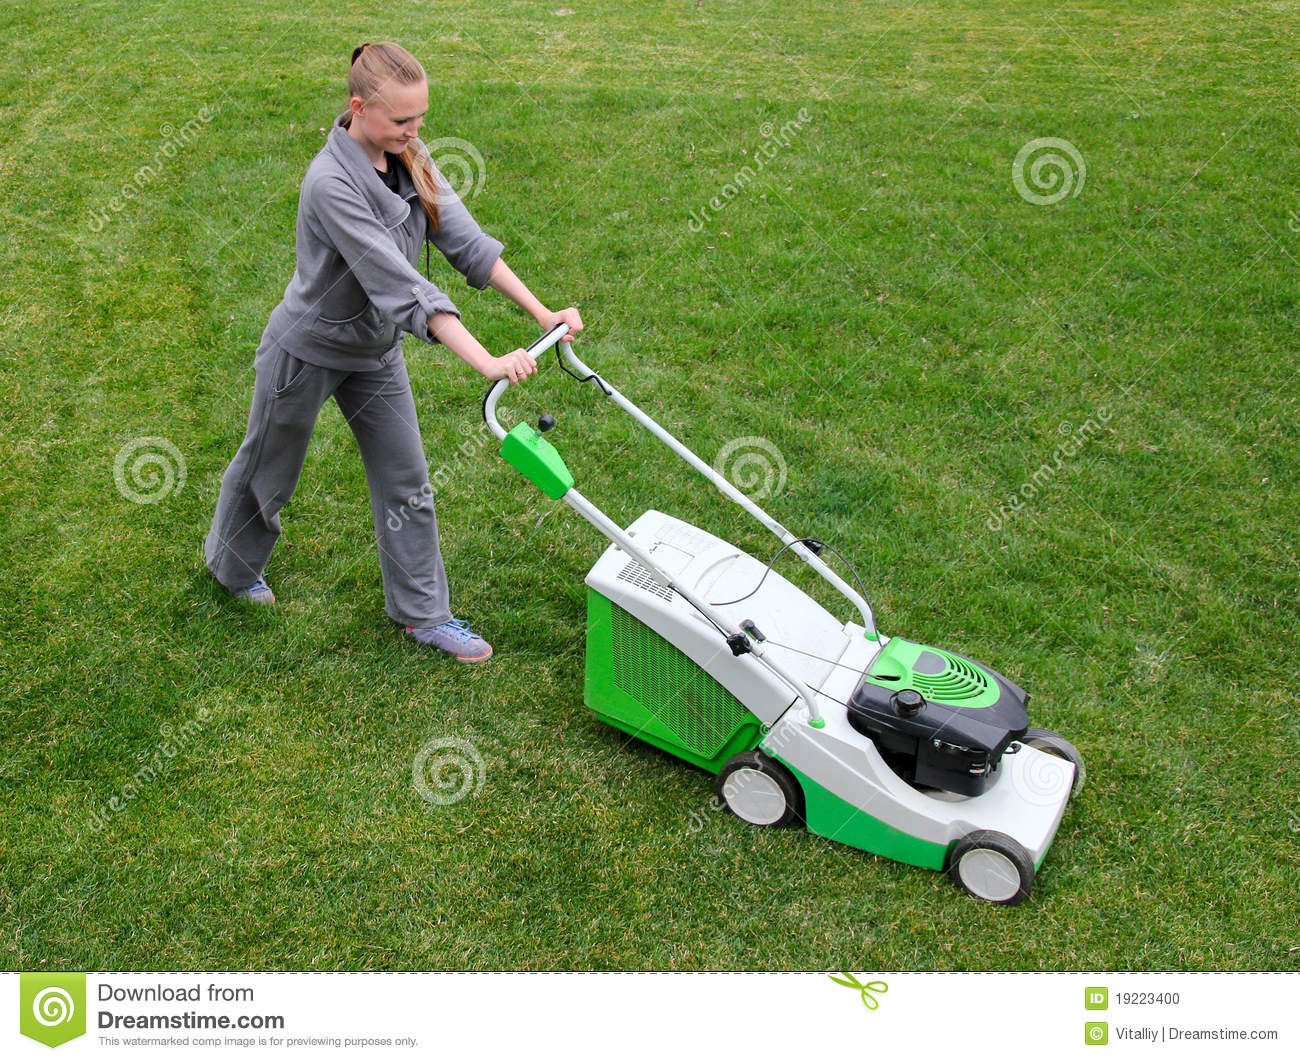 Beautiful Girl Cuts The Lawn Stock Photo - Image: 19223400